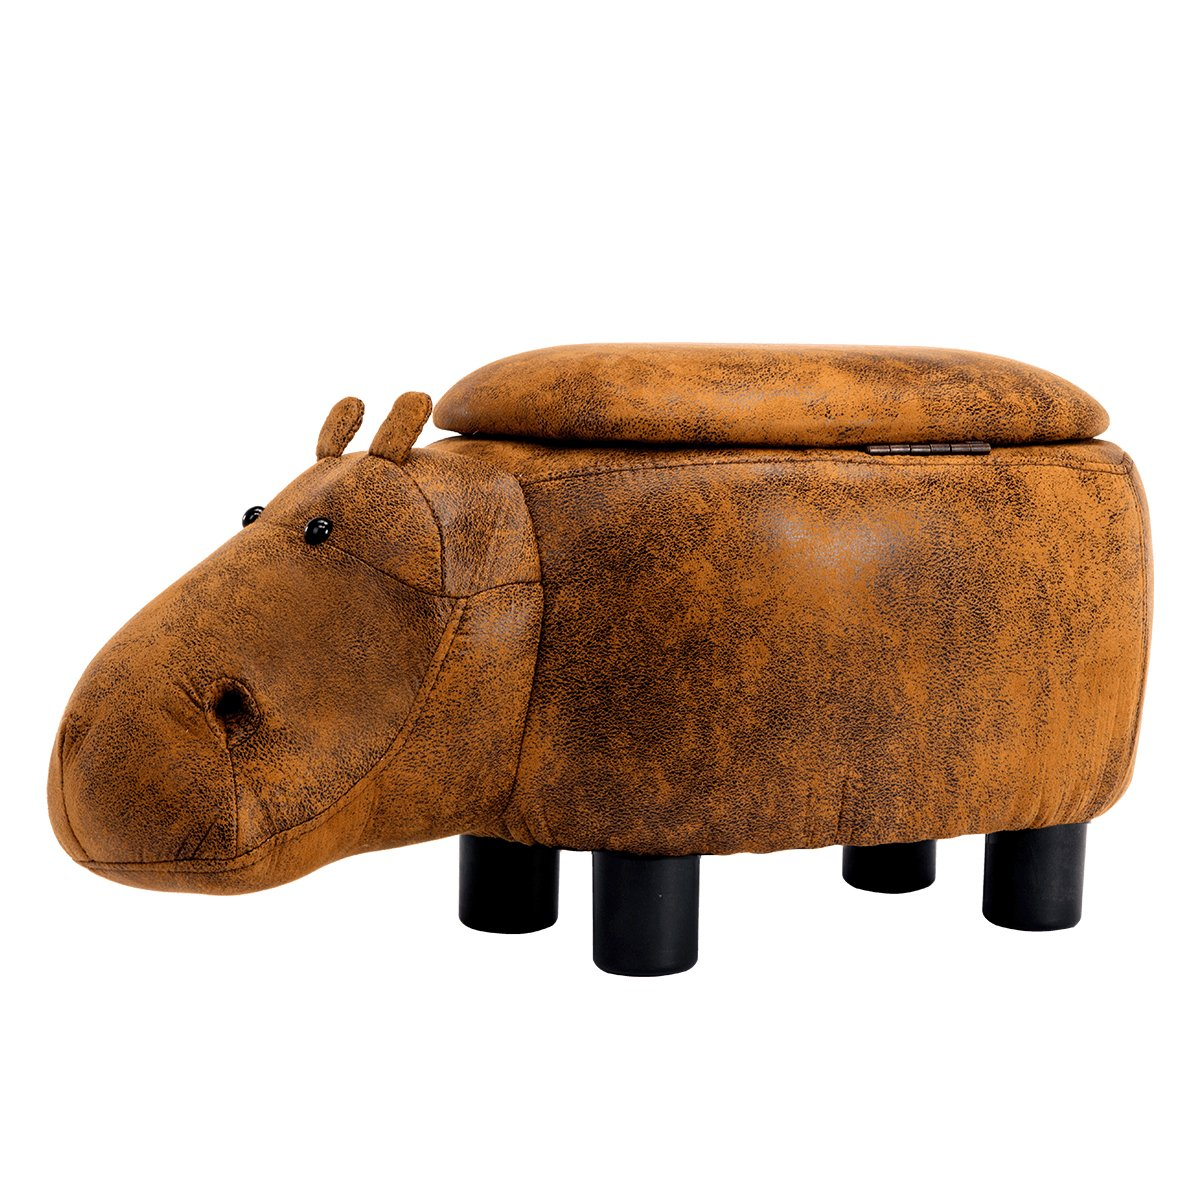 Guteen Upholstered Ride-on Toy Seat Storage Ottoman Footrest Stool with Vivid Adorable Animal-Like Features(Brown Hippo)